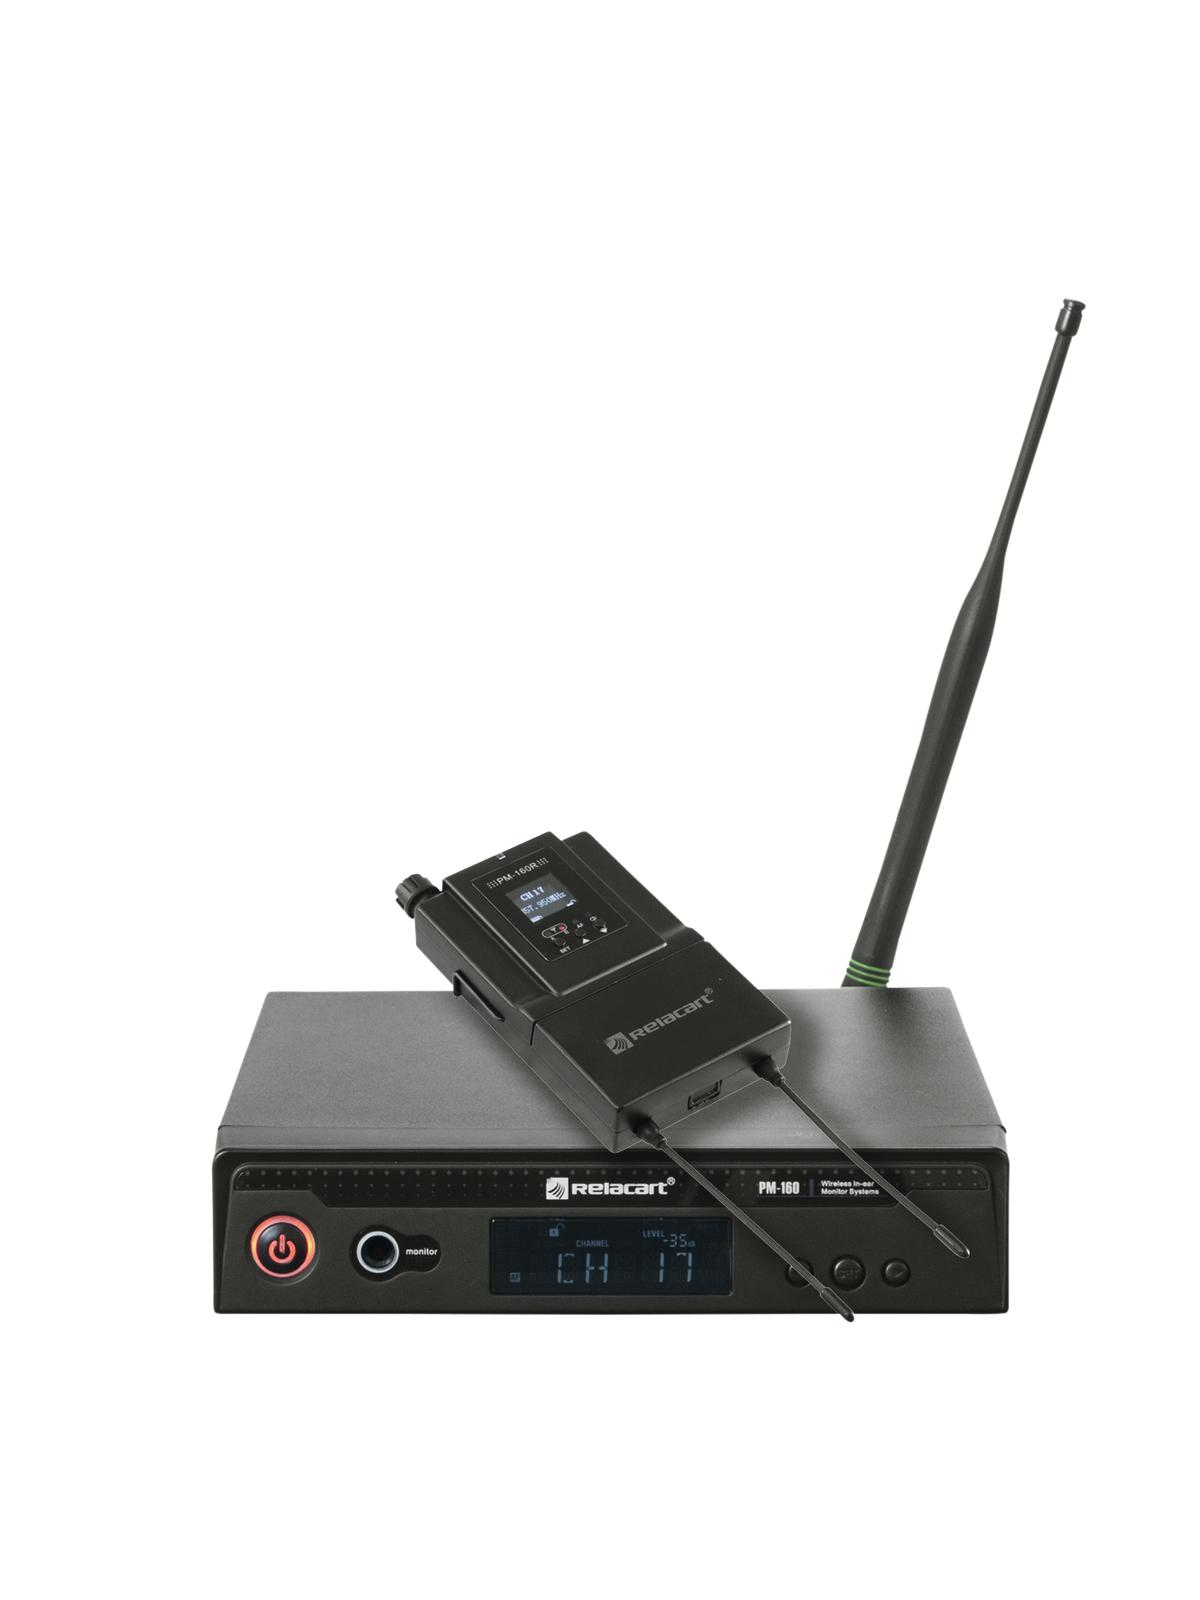 RELACART PM-160 Diversity In-Ear-Monitor System